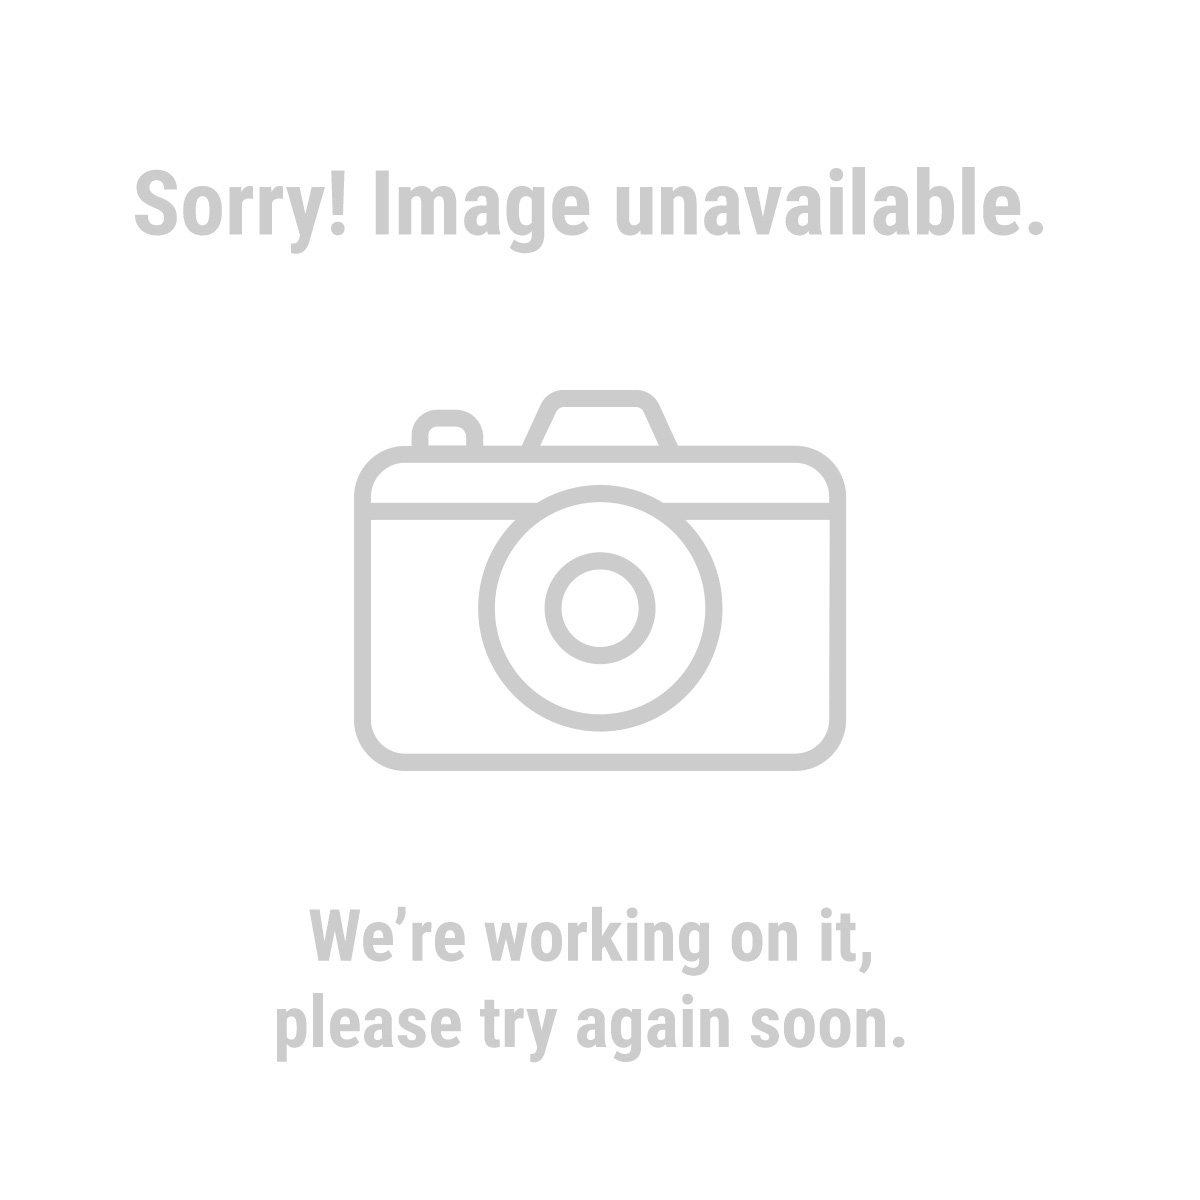 Warrior® 61314 6 Piece Triangle Sandpaper Assortment for Wood